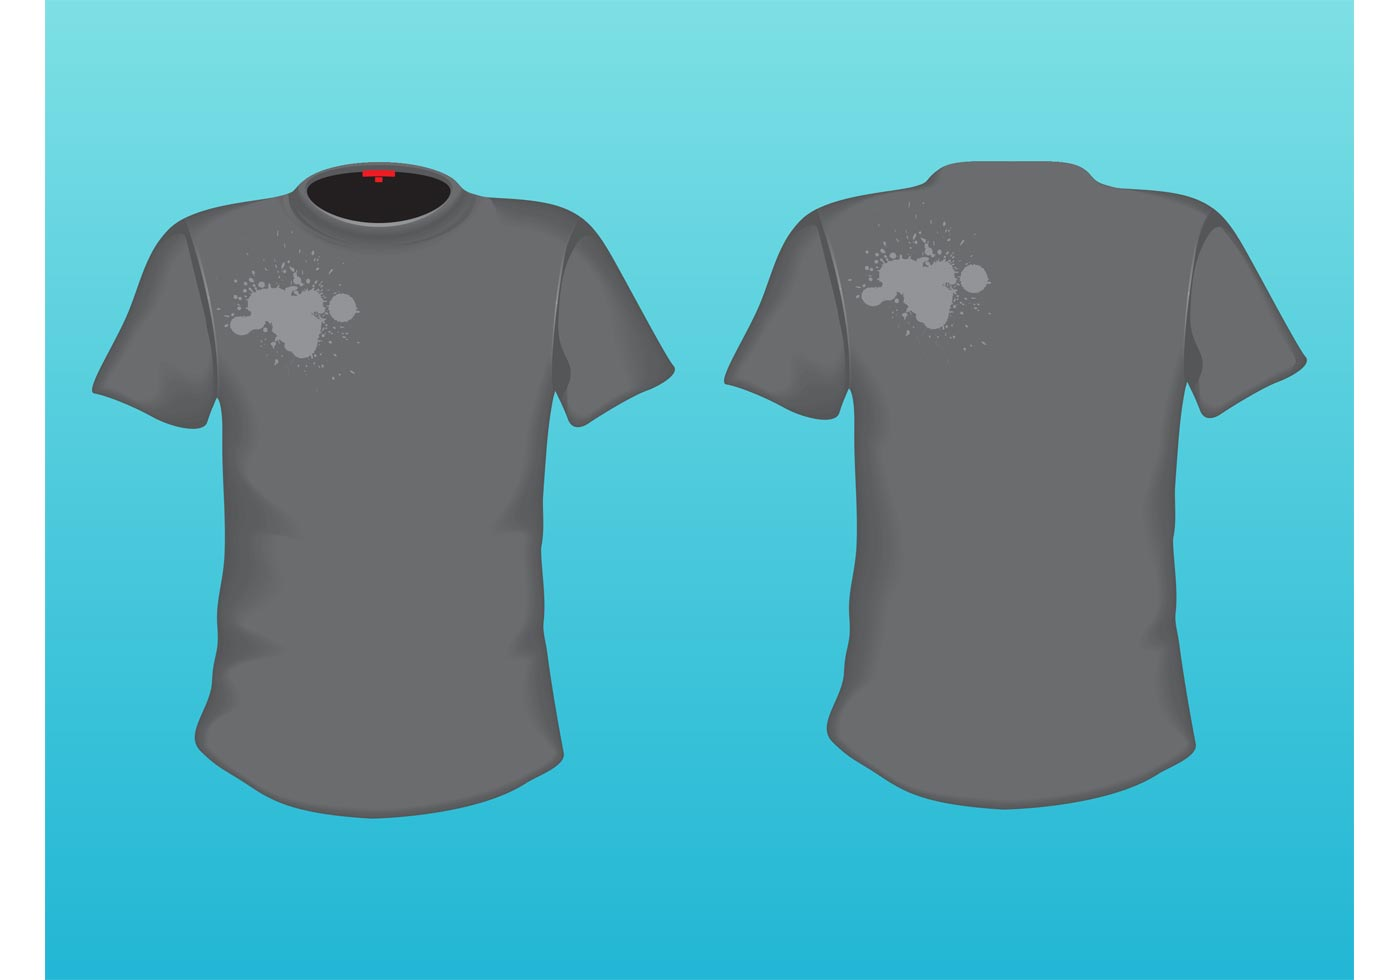 Grey T-Shirt - Download Free Vector Art, Stock Graphics & Images